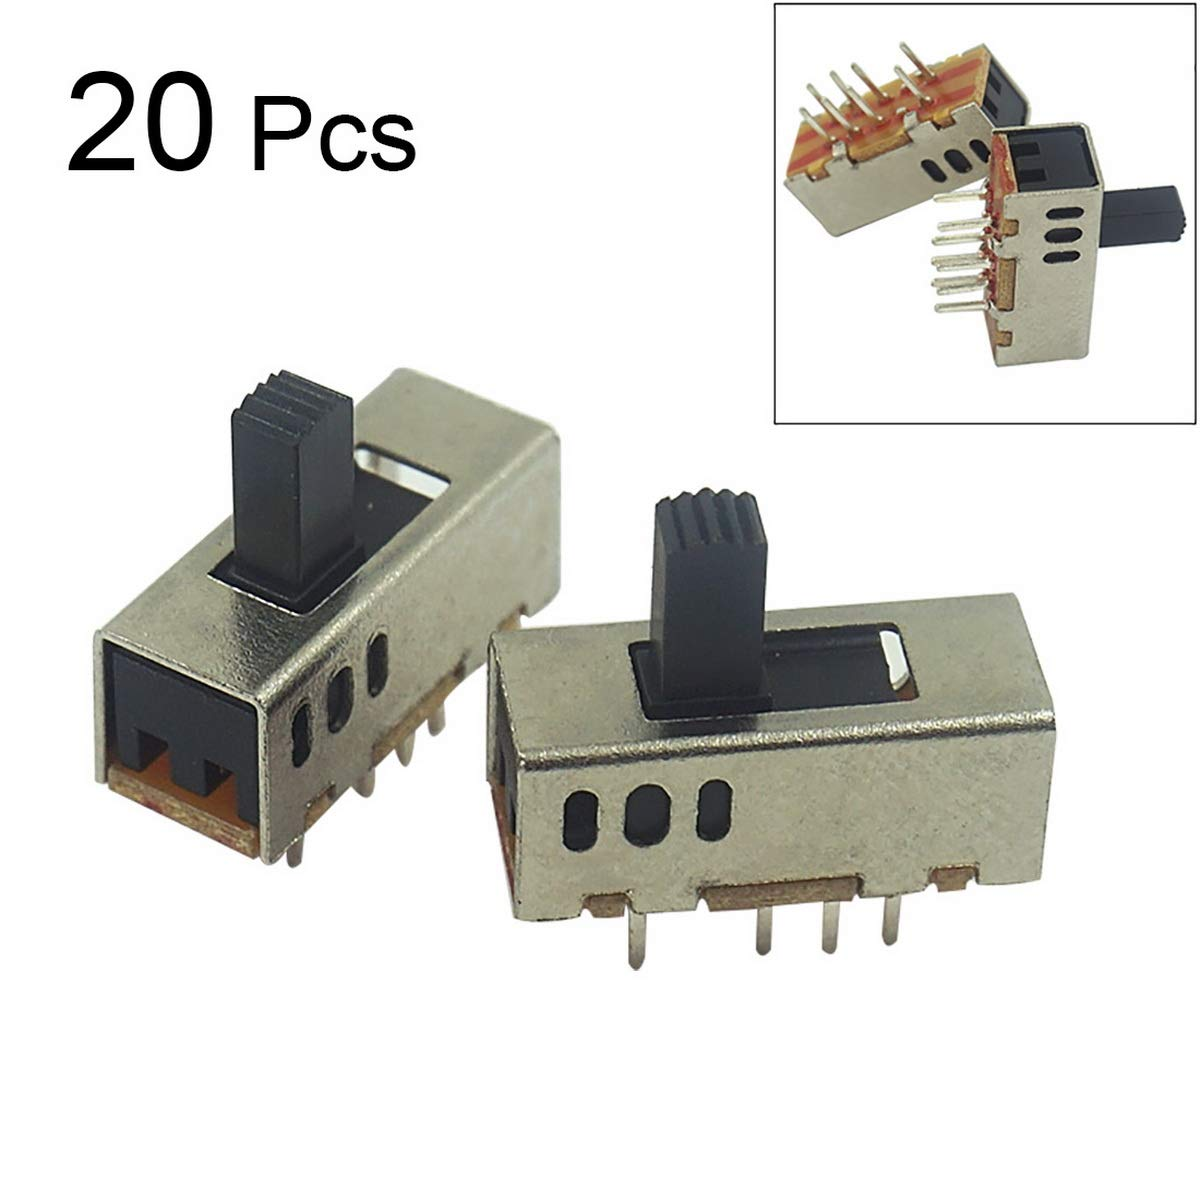 Loweryeah 2P3T Three-Speed Toggle Switch Electric Toy Torch Switch 20pcs